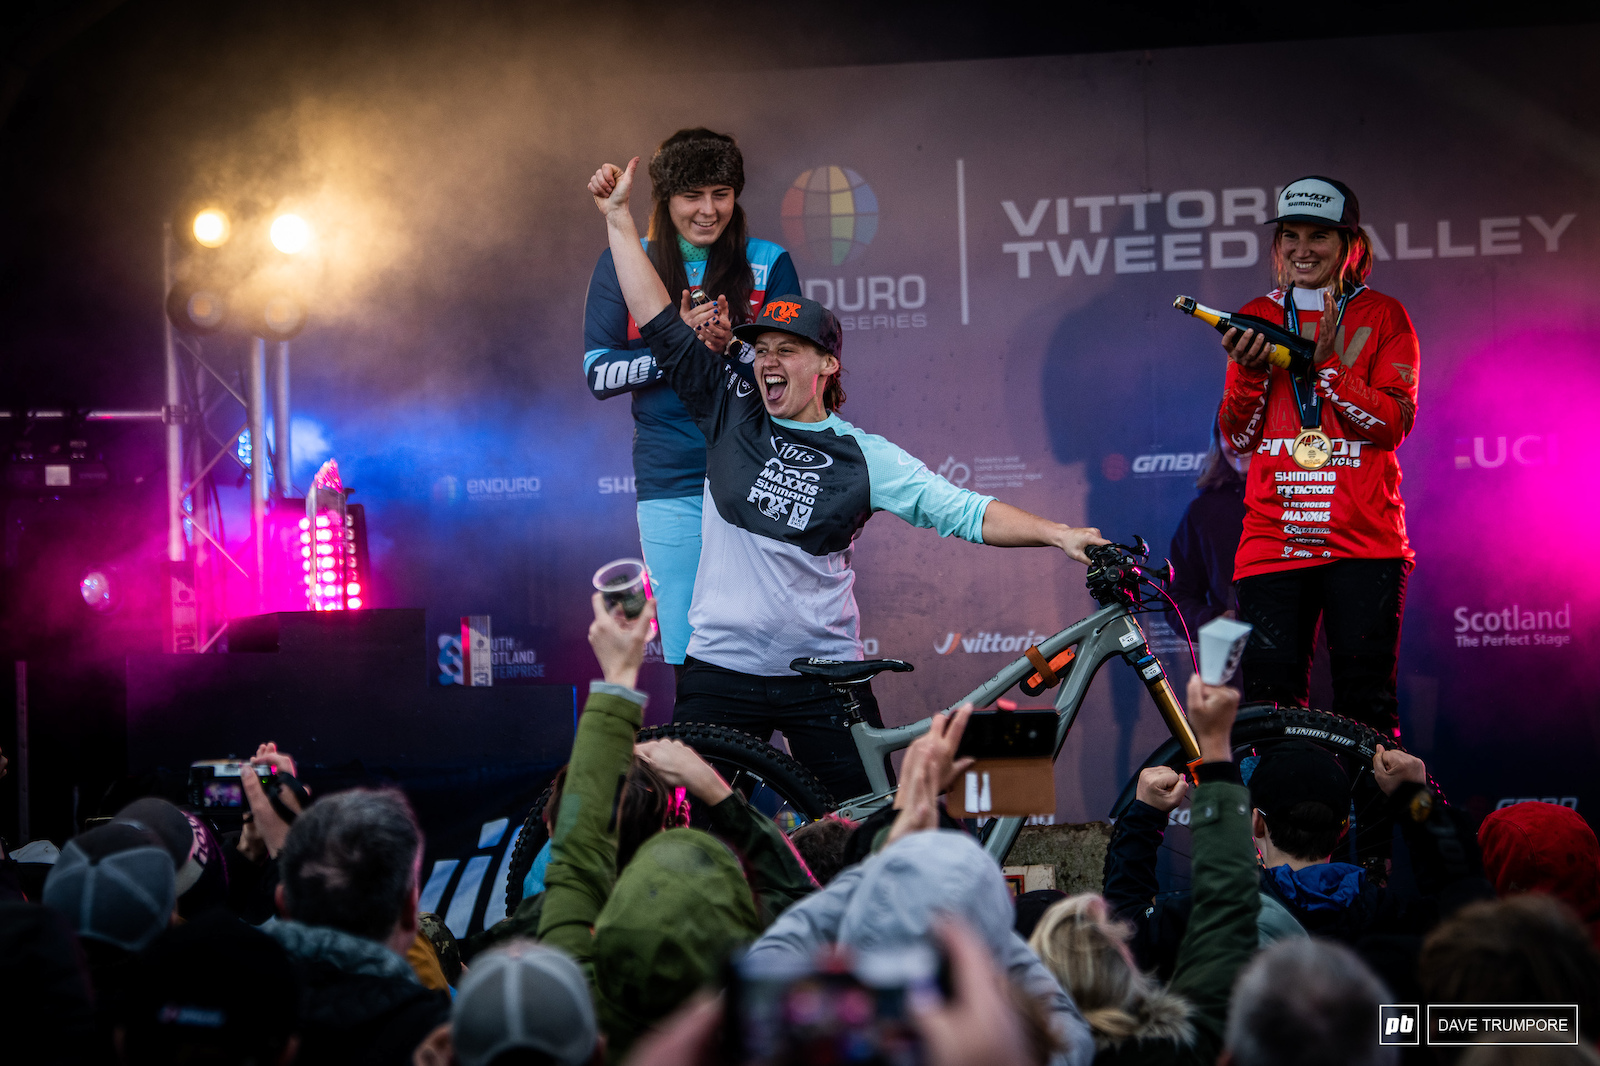 What a way to end the season at home for Bex Baraona. Her first EWS win and on home soil. nd would go to another Brit Harriet Harnden with France s Morgane Charre in 3rd